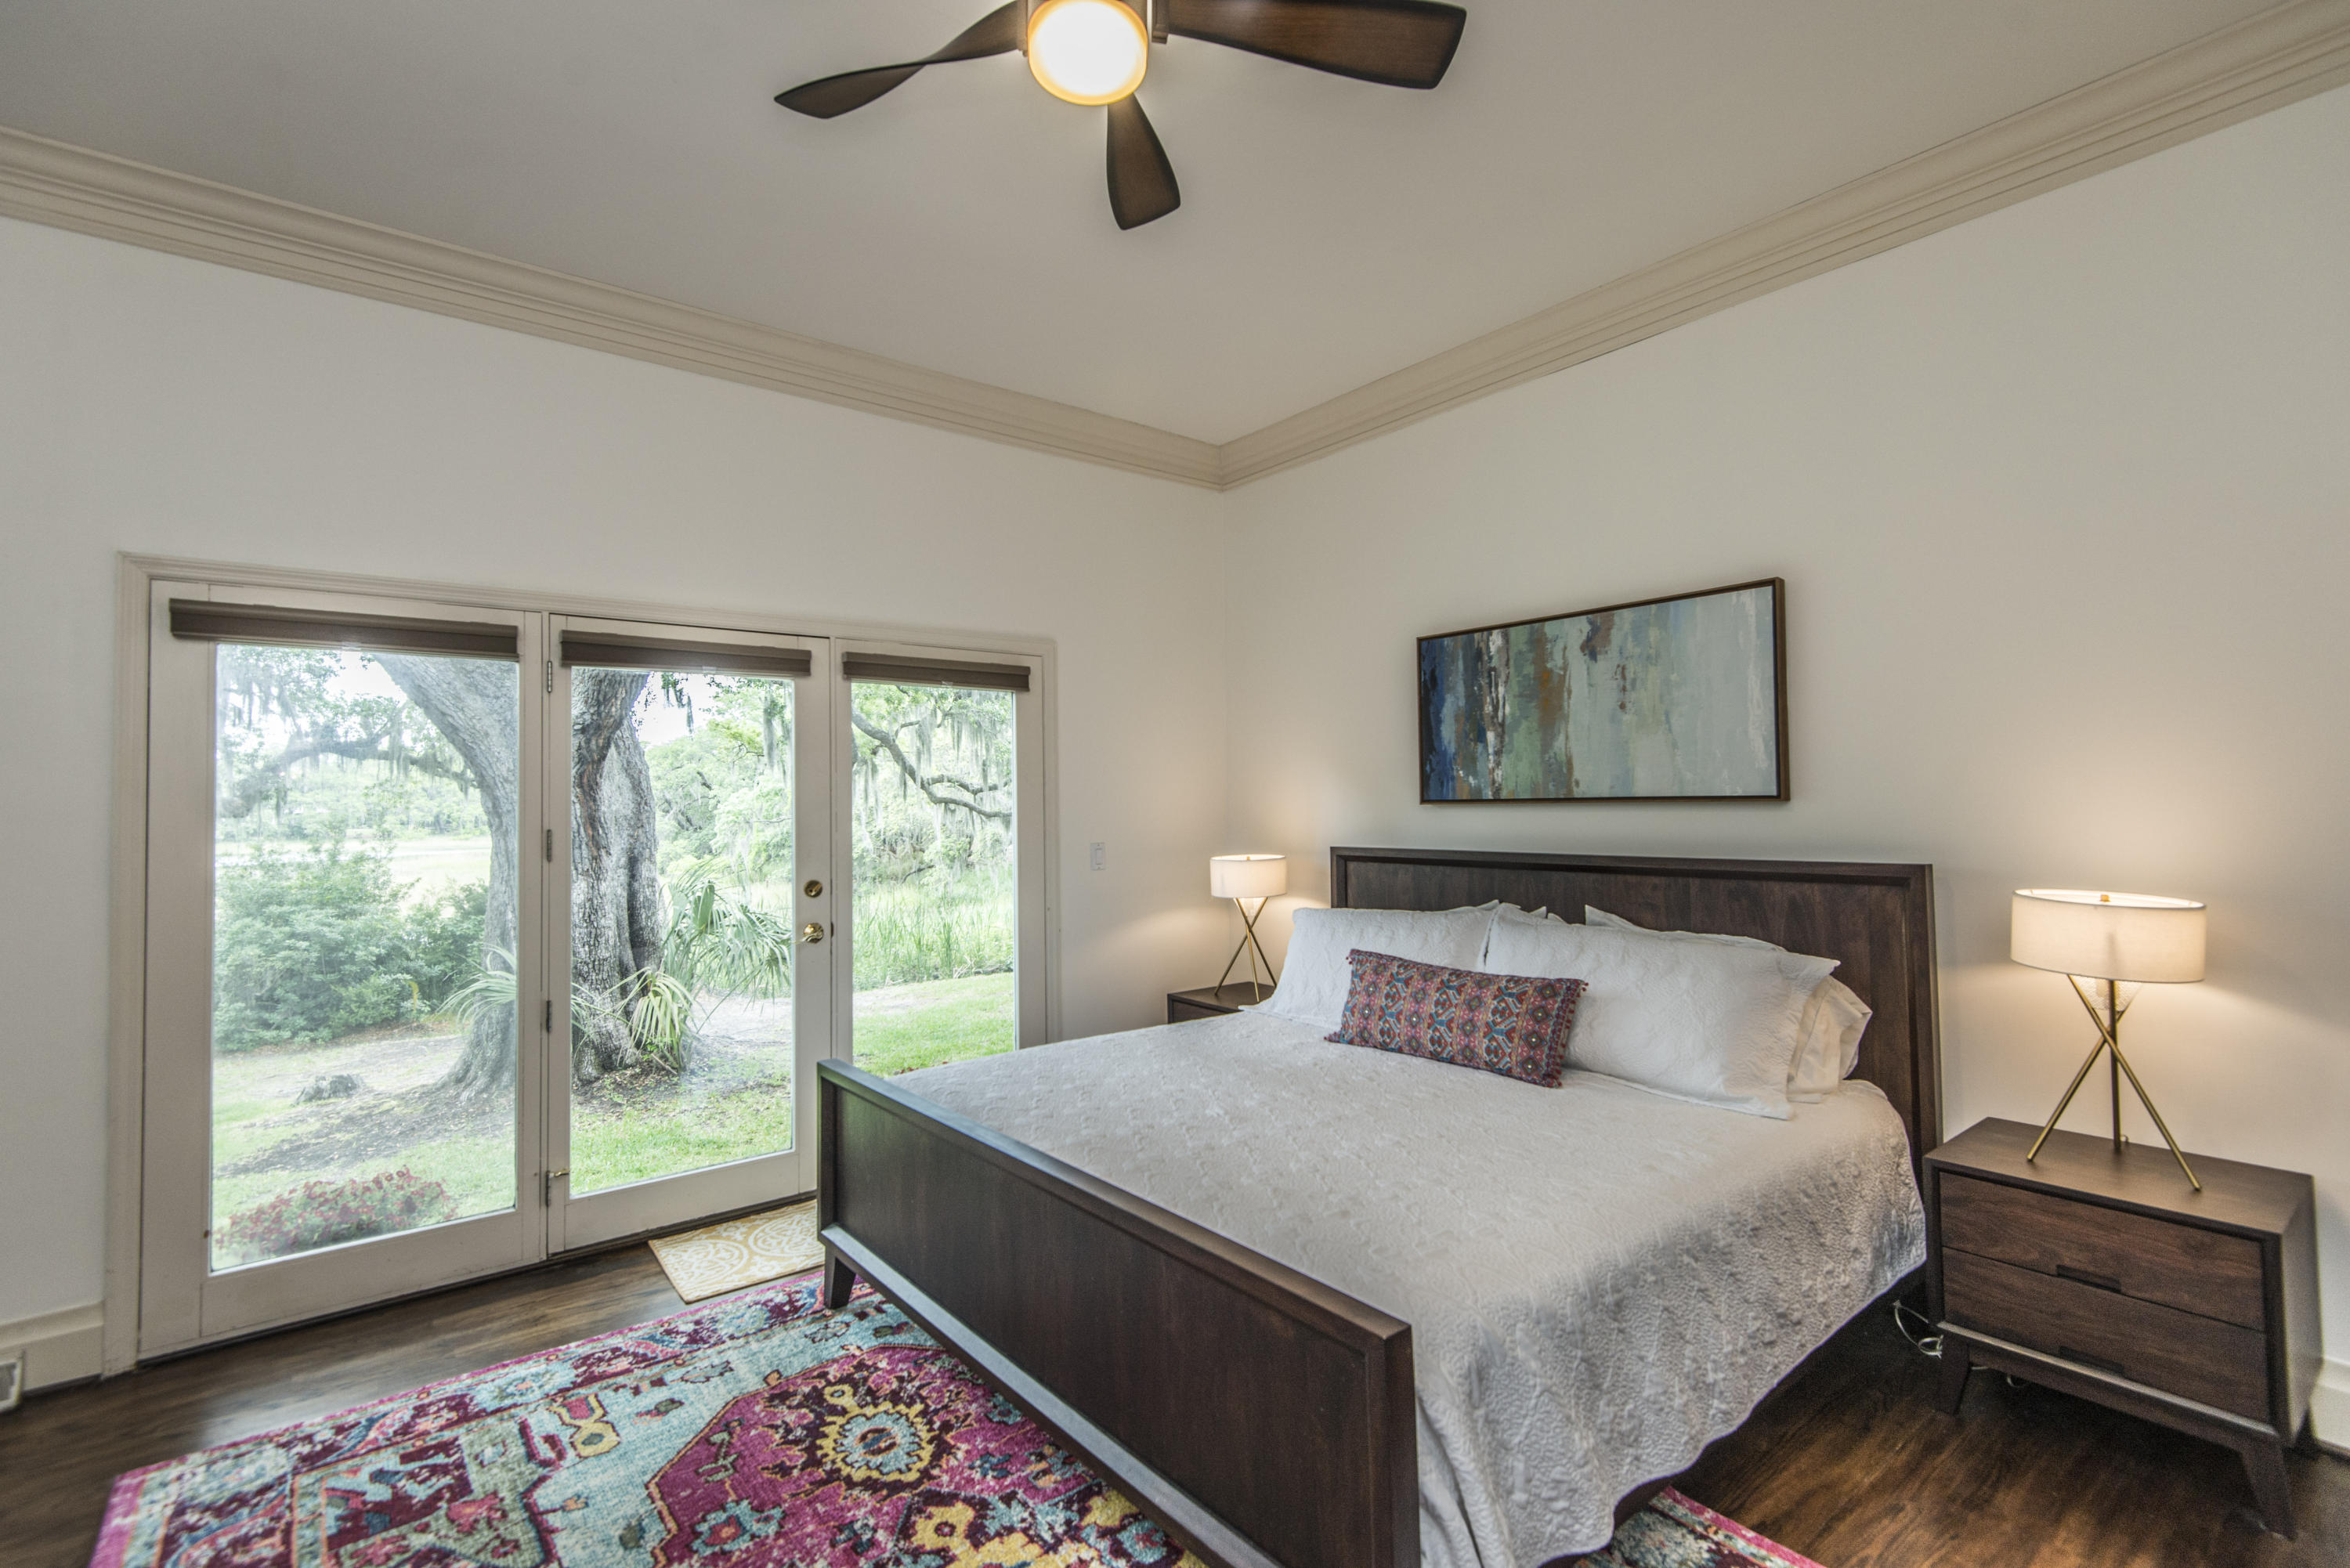 Stiles Point Plantation Homes For Sale - 921 Cotton House, Charleston, SC - 53